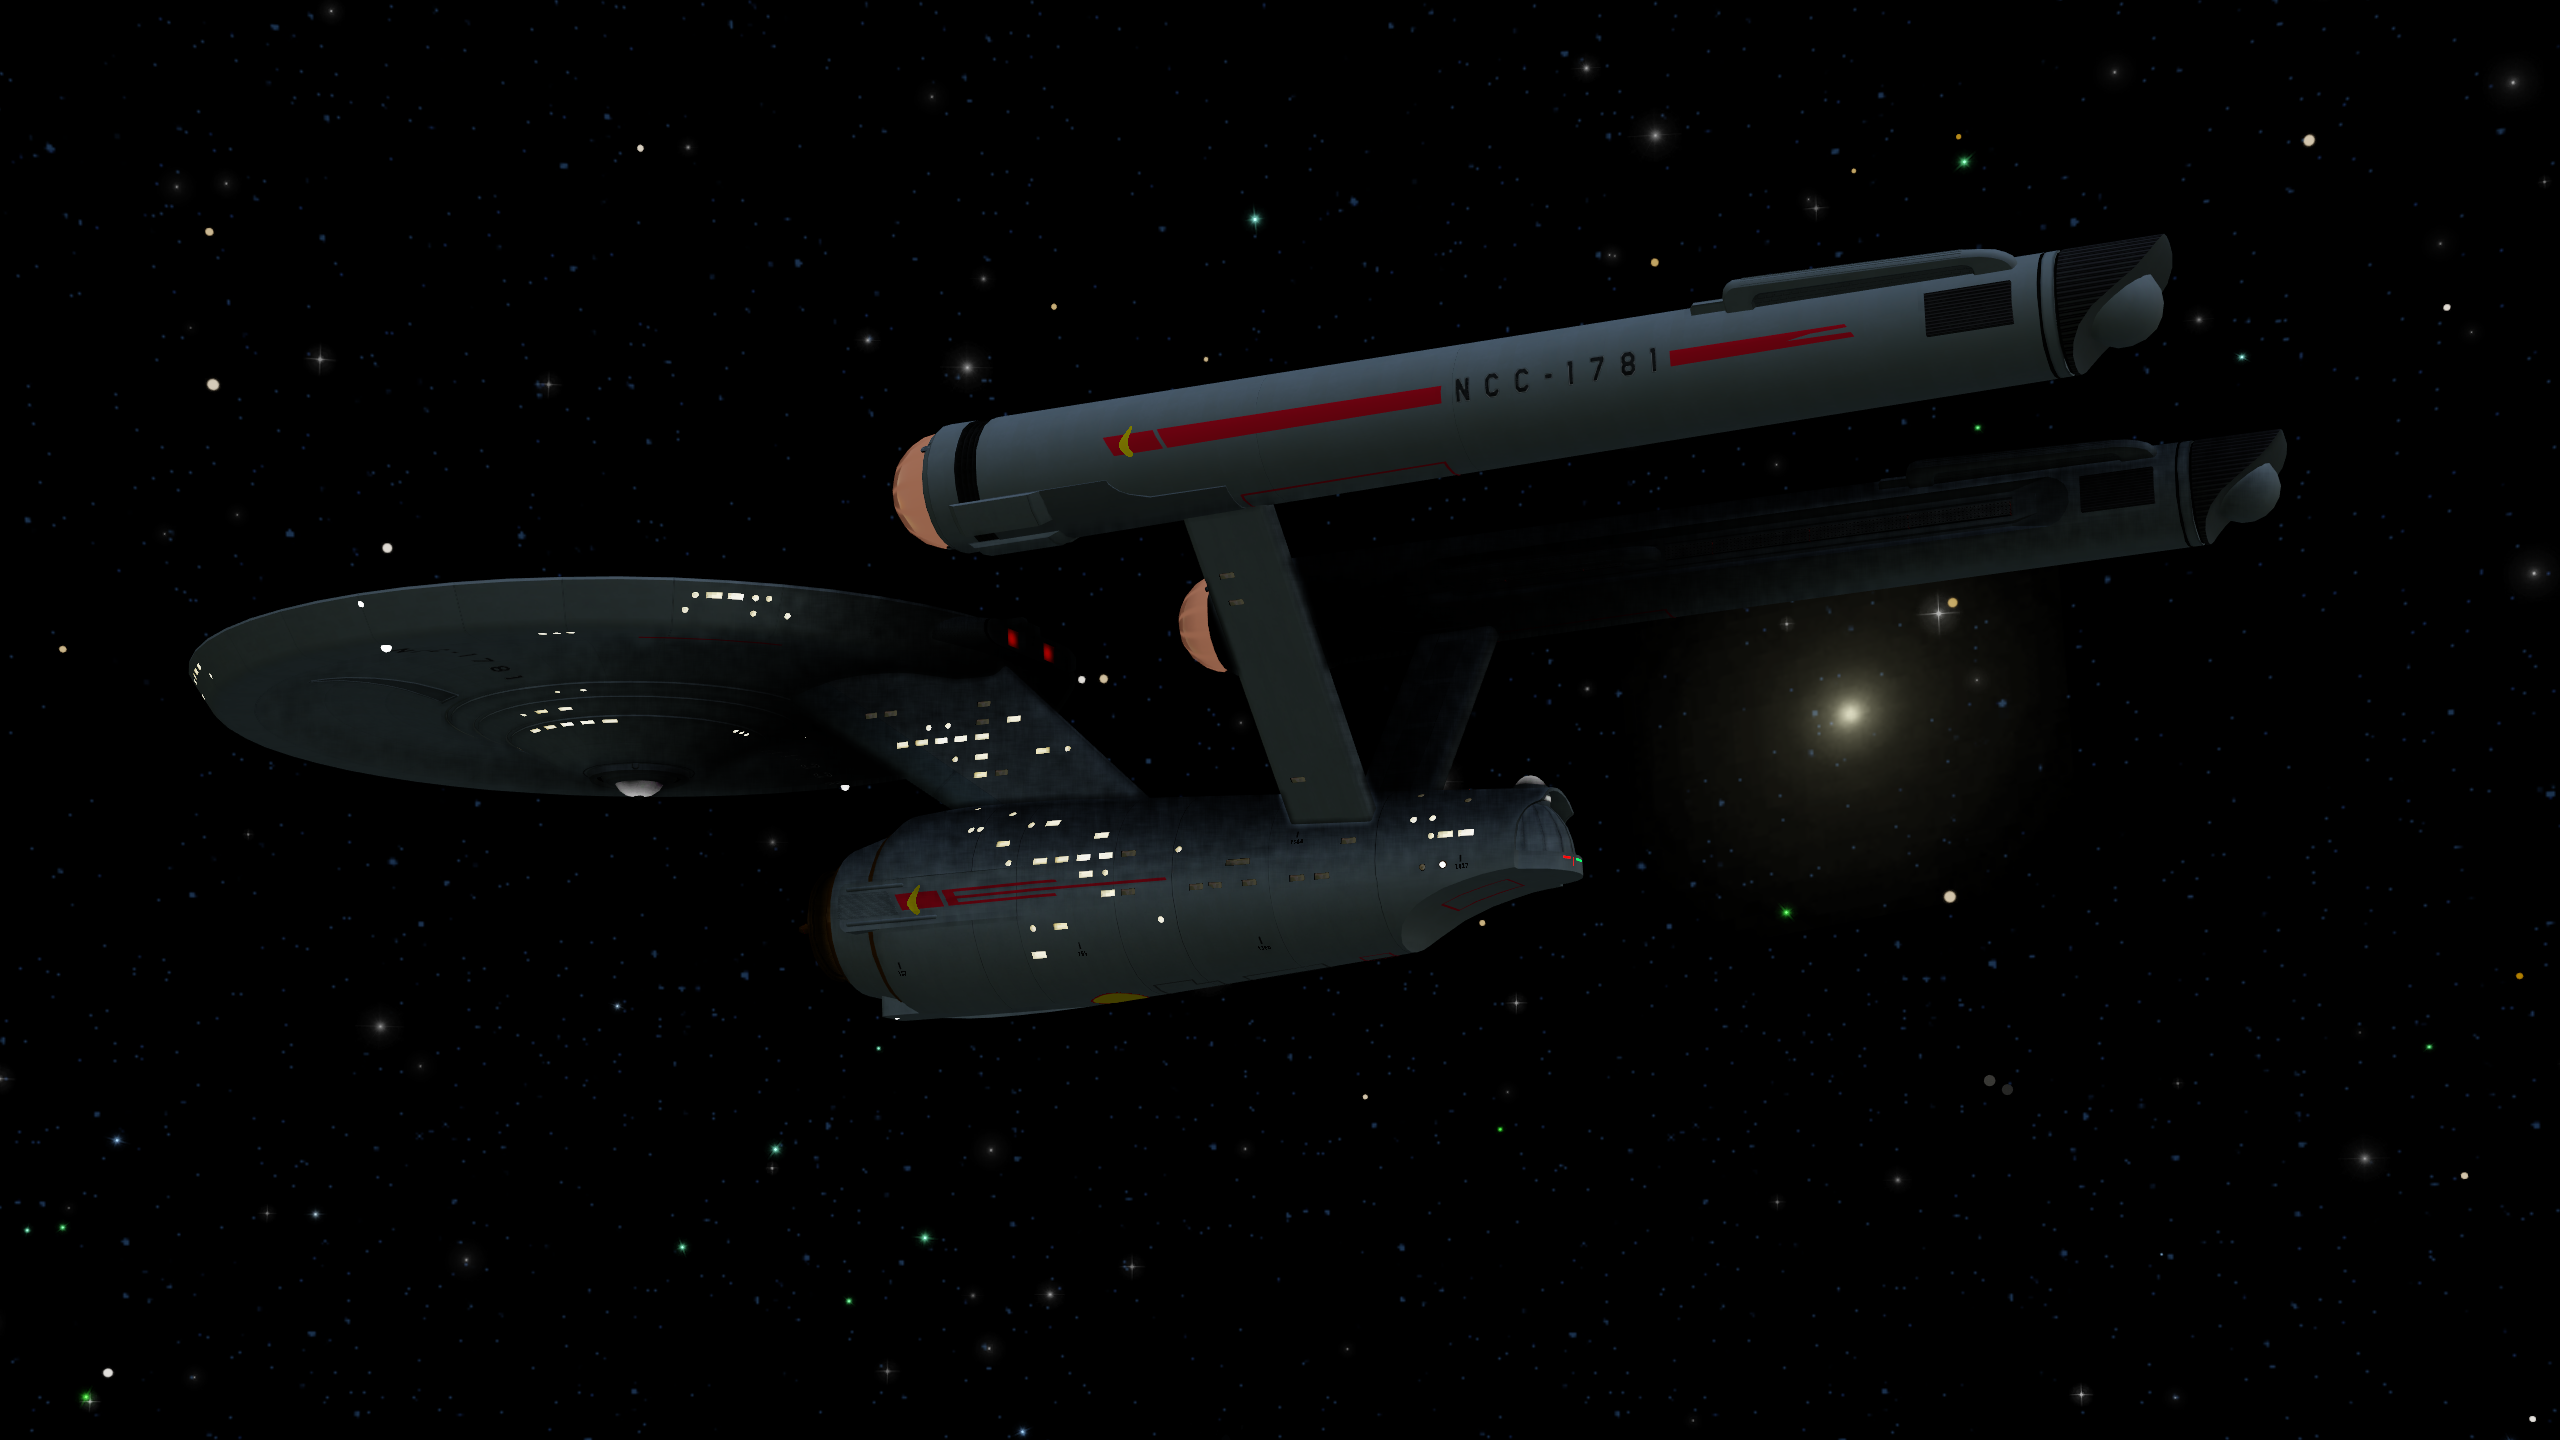 U.S.S. Dunsel (NCC-1781), adrift in Space